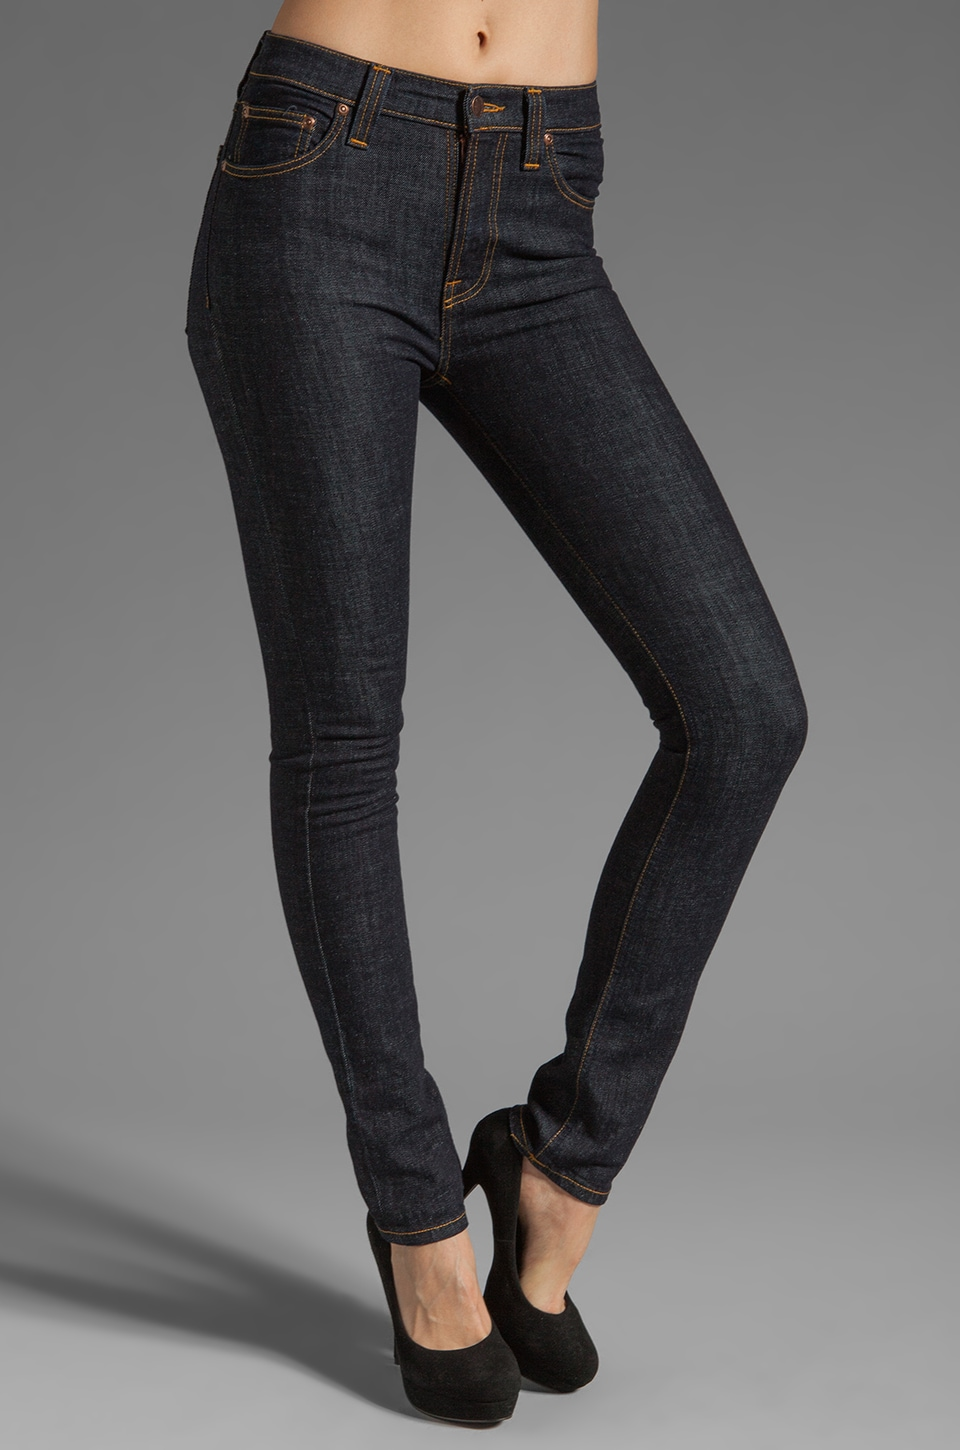 Nudie Jeans High Kai in Organic Twill Navy